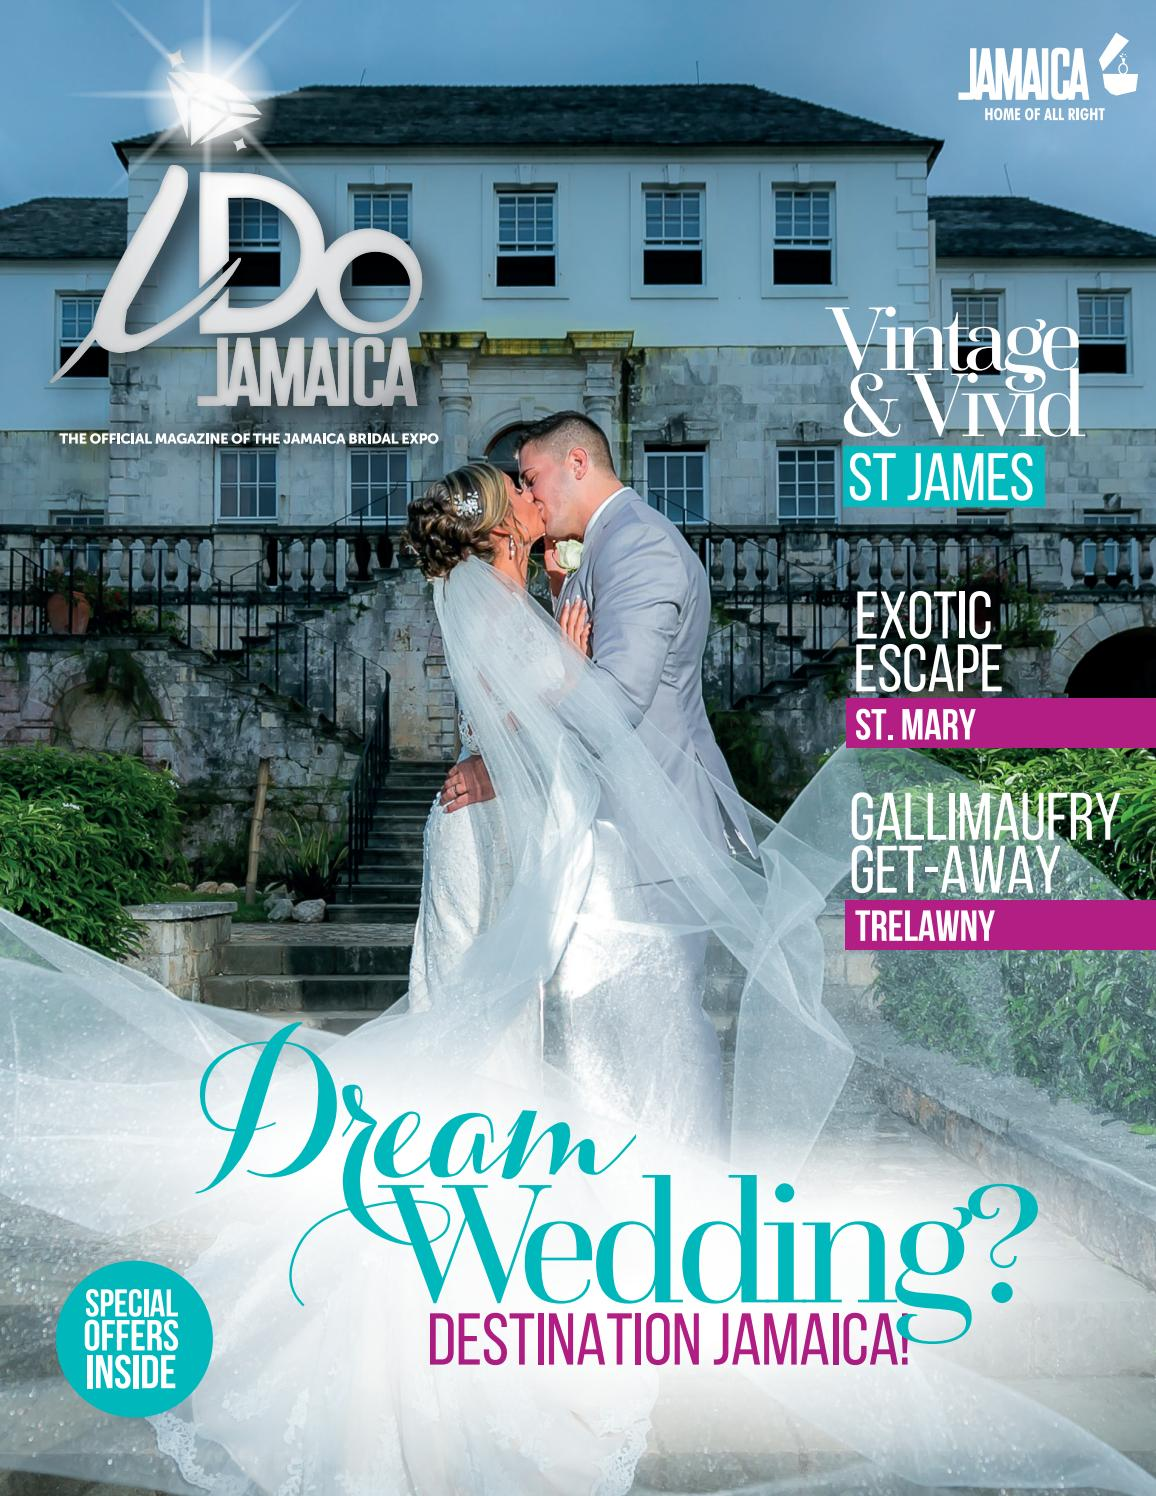 I Do Jamaica: Dream Wedding? Destination Jamaica! by mel witter - issuu